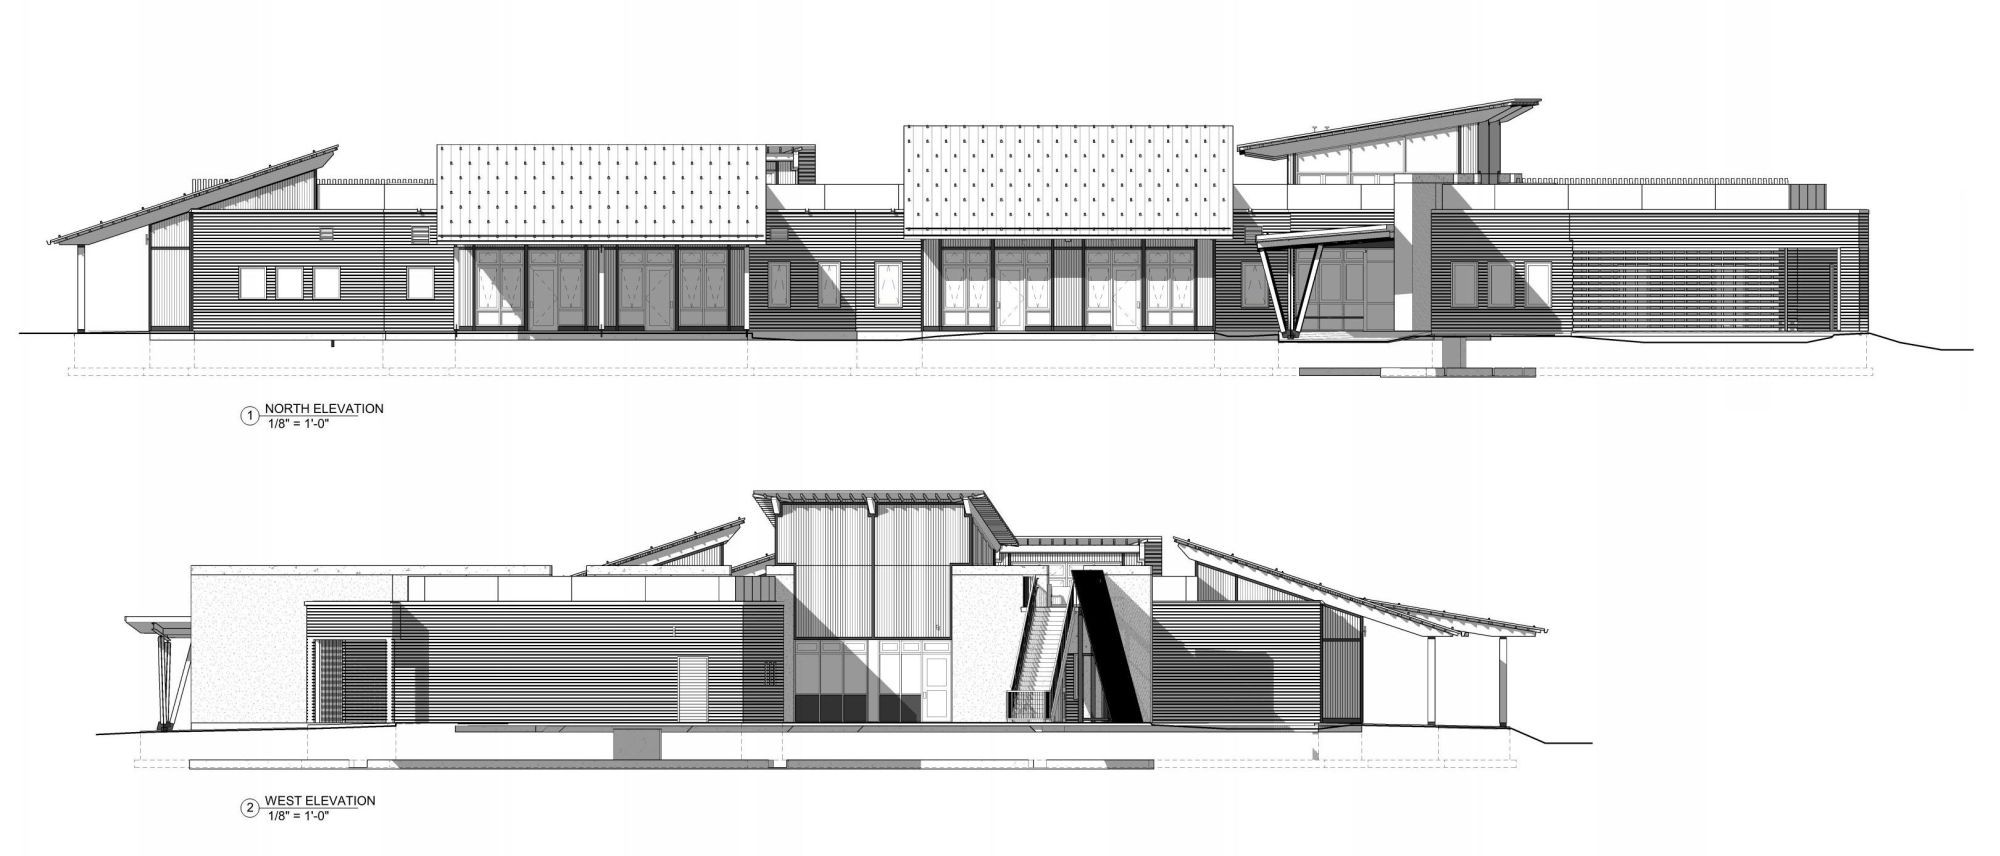 Gallery of teton county children 39 s learning center ward for Architecture elevation